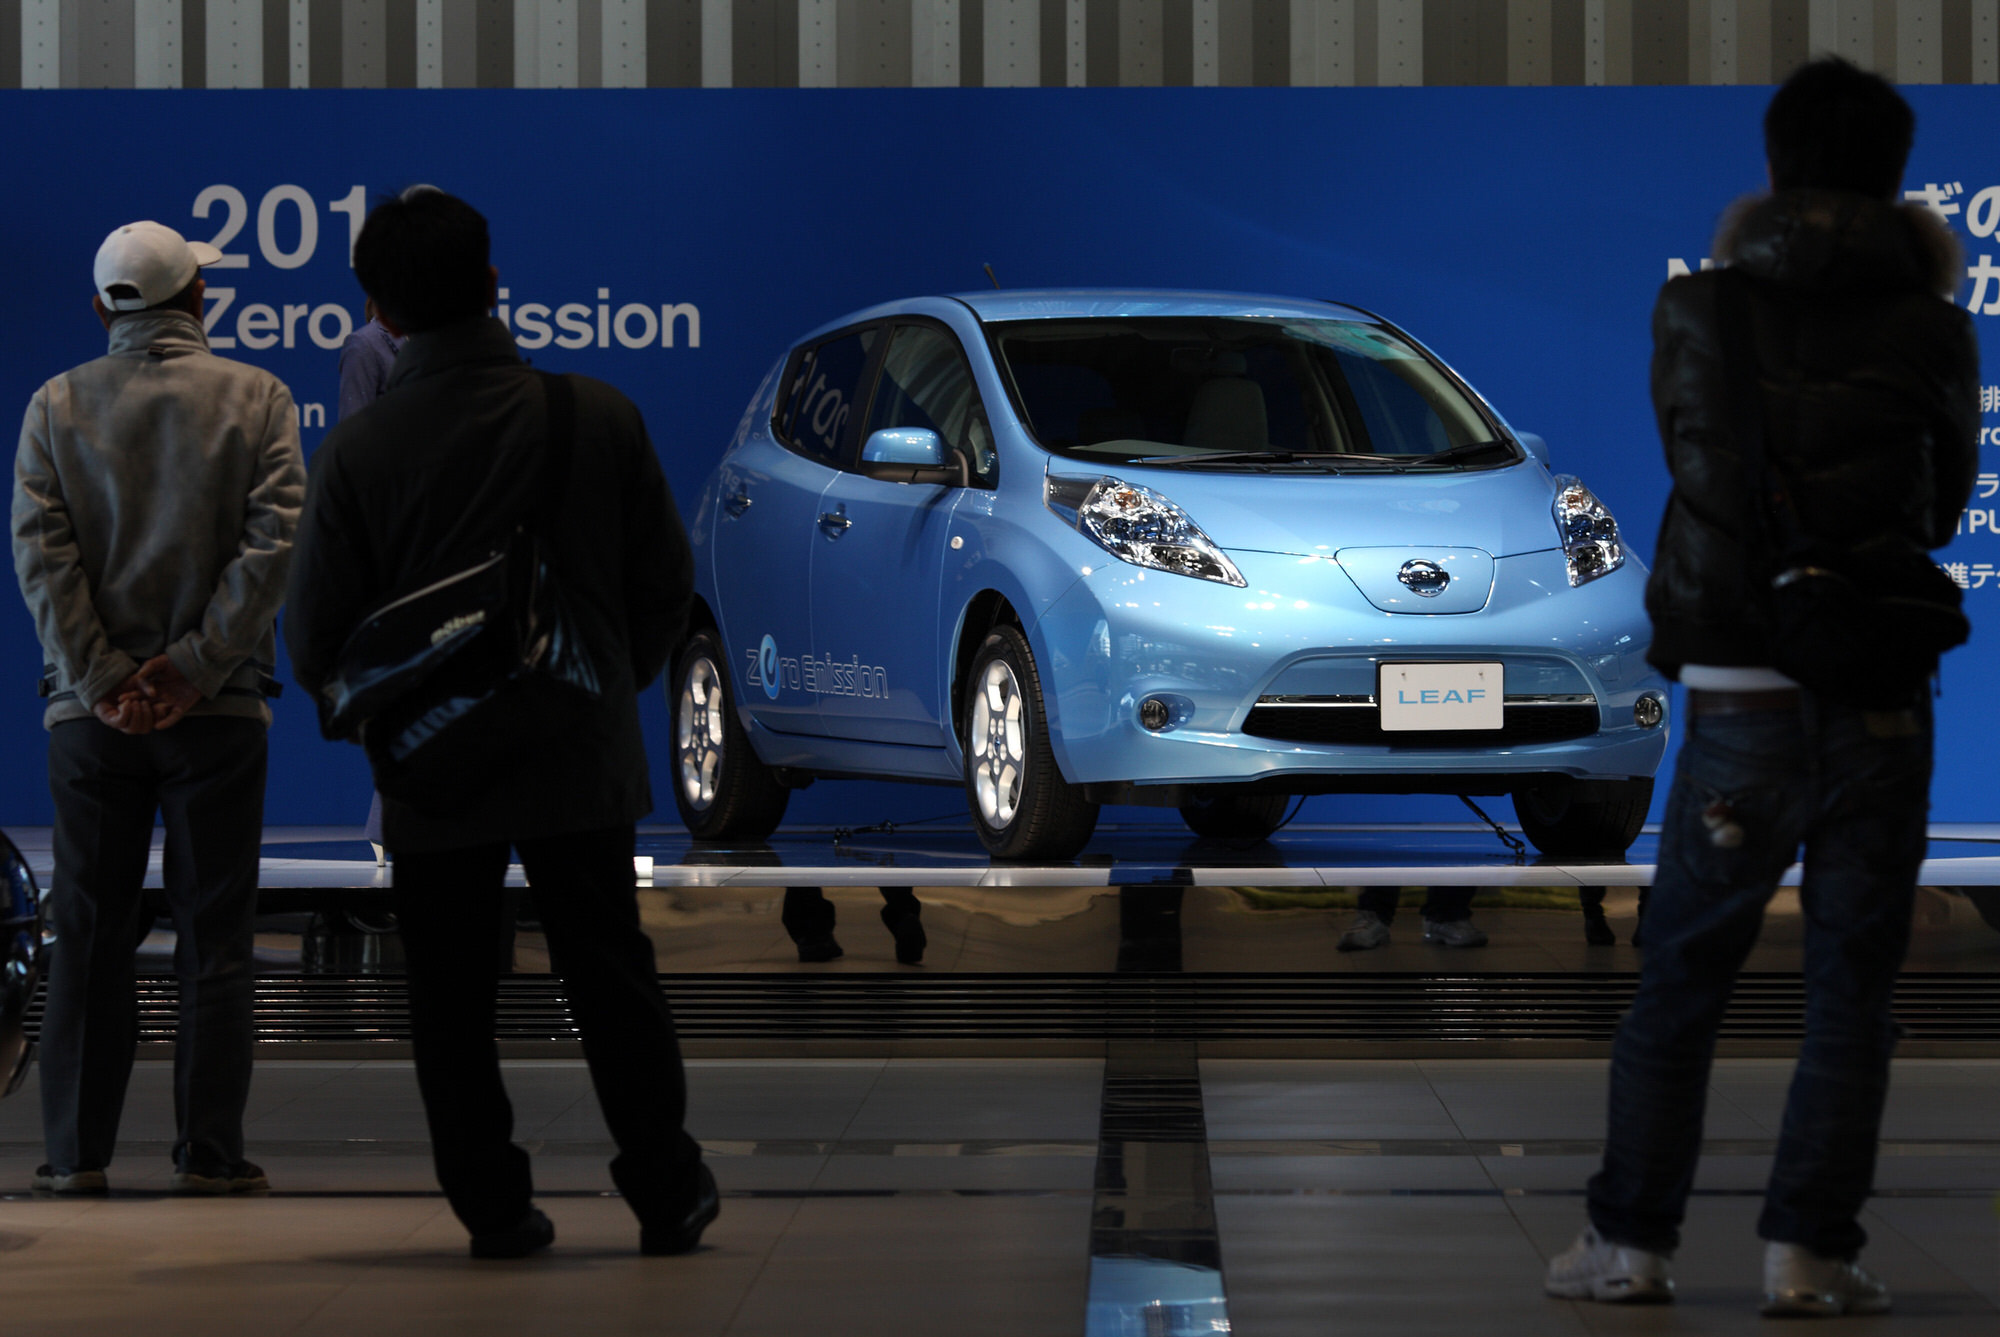 the car to energy new up electric worlds with now bloomberg catch best s selling leaf finance tesla nissan is blog world needs